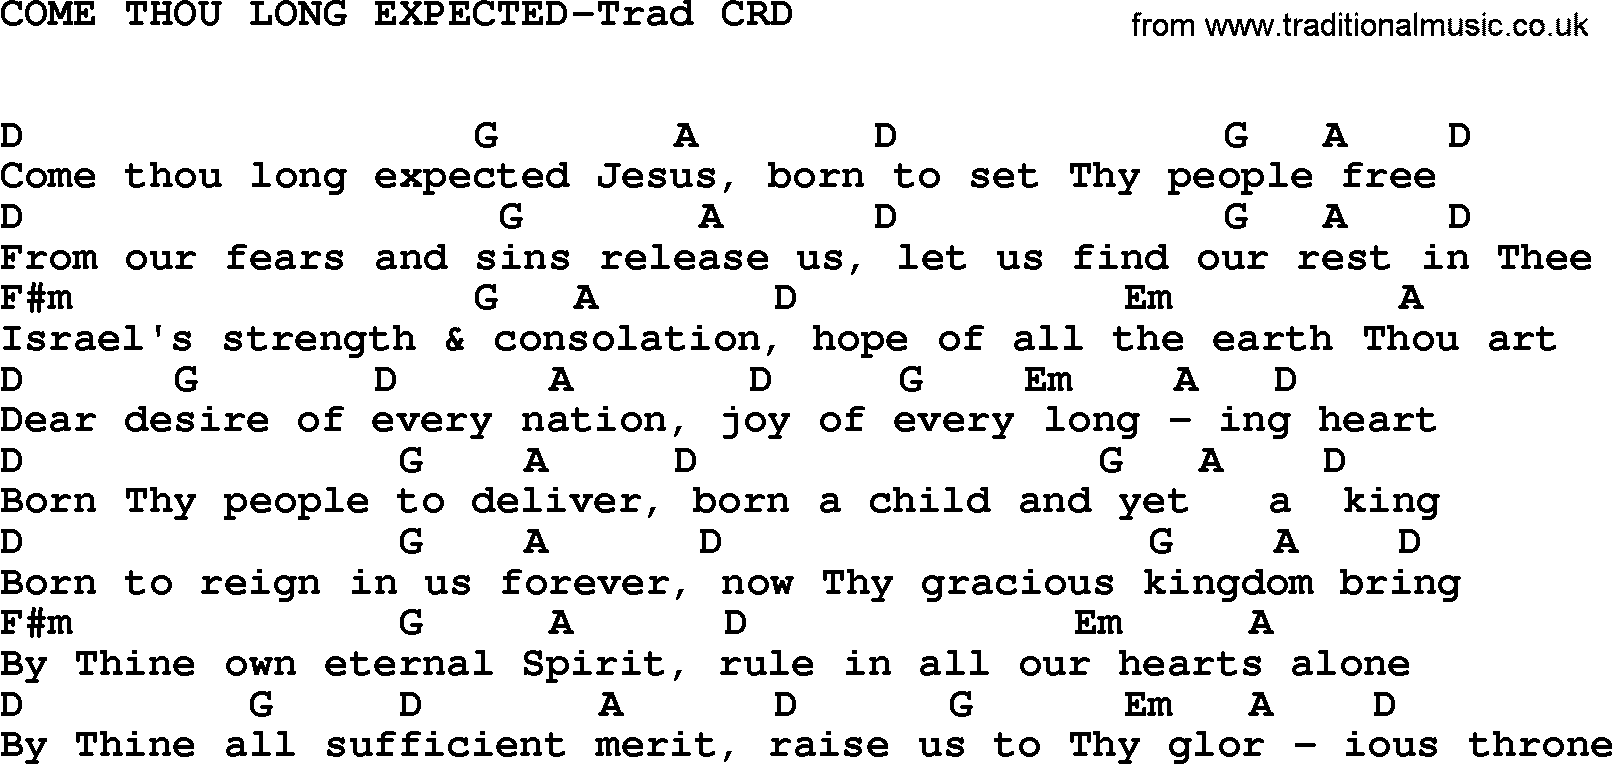 Gospel Song Come Thou Long Expected Trad Lyrics And Chords